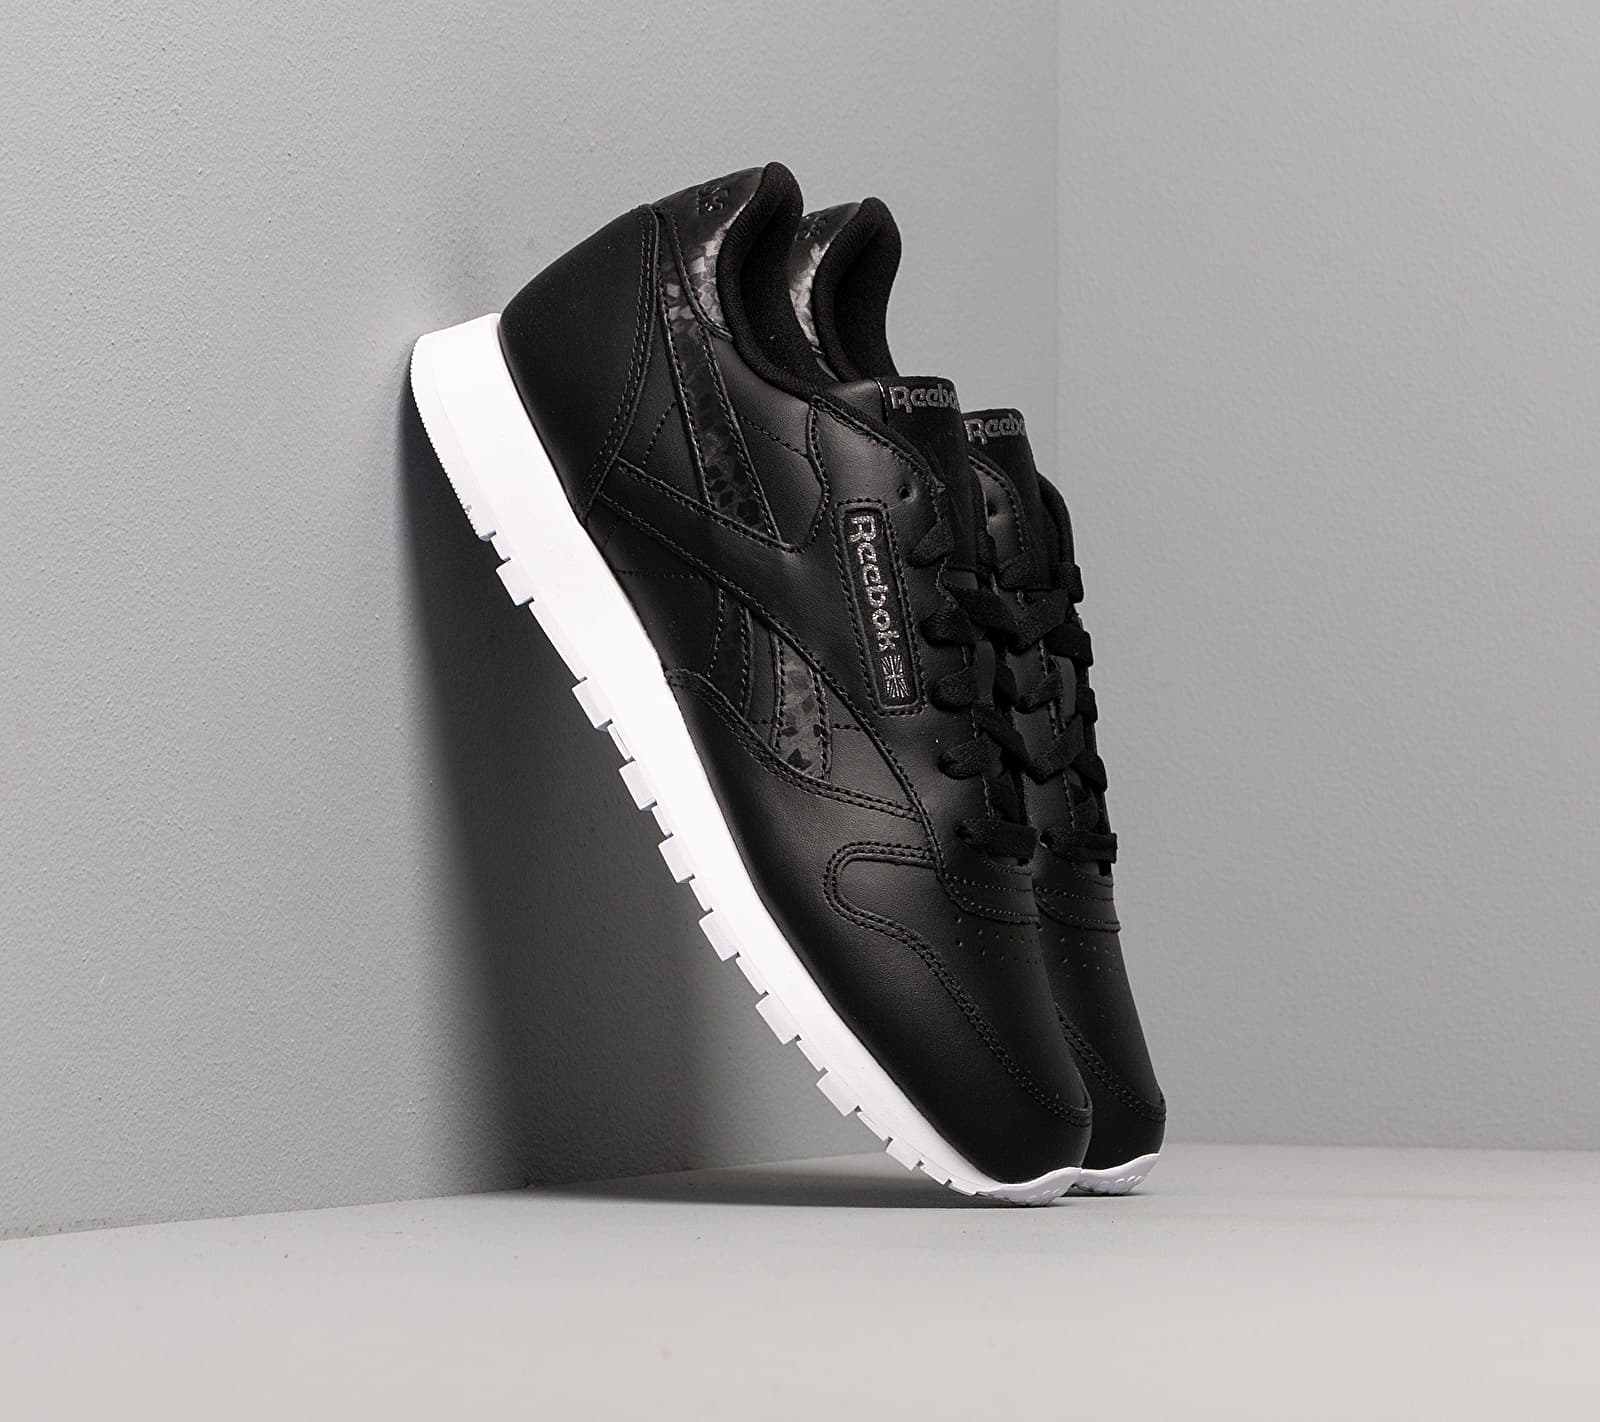 Reebok Classic Leather Black/ Black/ White EUR 39